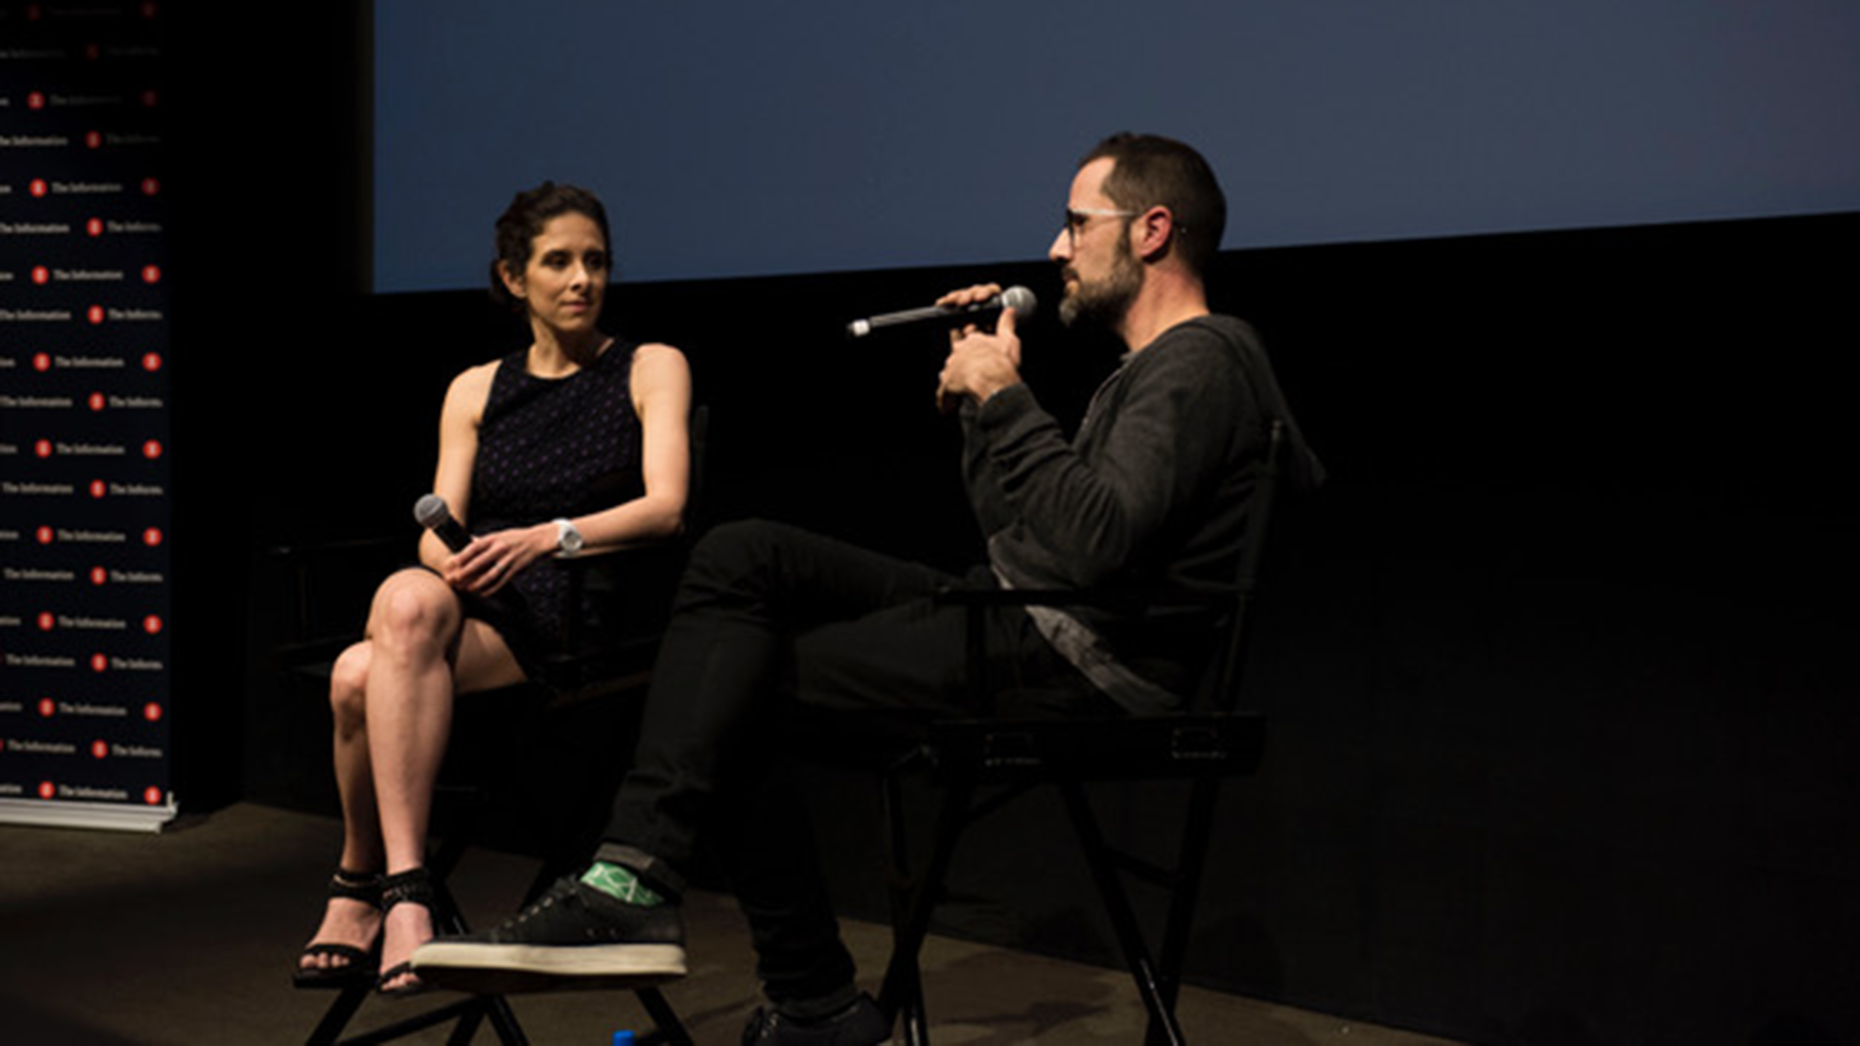 Jessica Lessin interviews Twitter co-founder Ev Williams at The Information's Silicon Valley Meets Hollywood event in Los Angeles. Photo: Angie Silvy